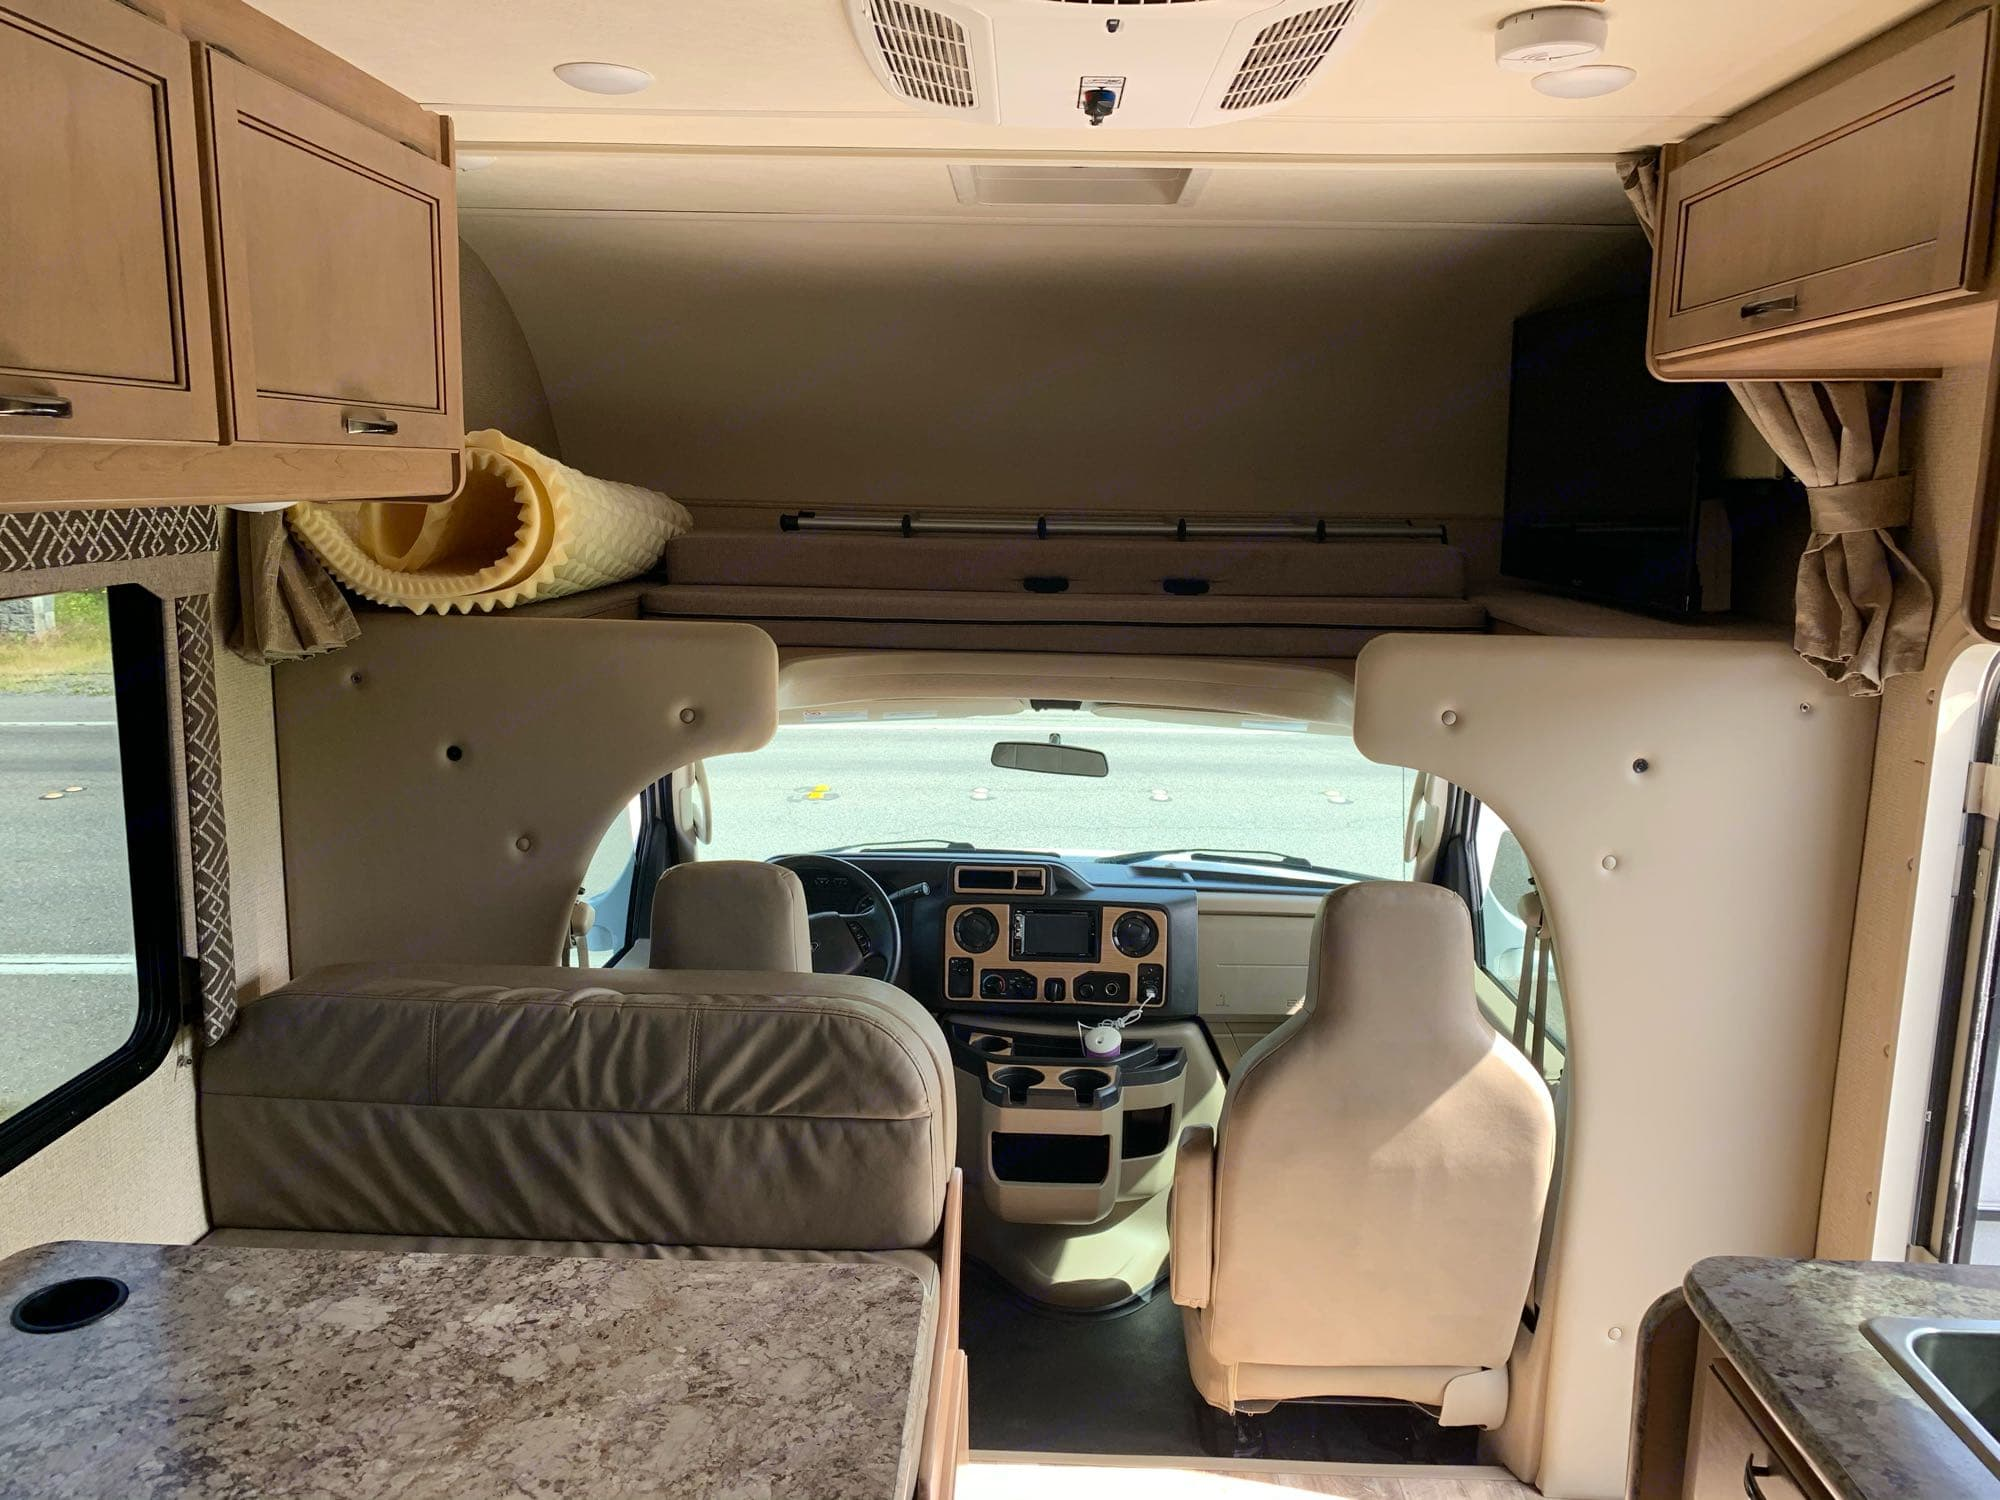 front of the cab: plenty of storage in overhead cabinets, loft bed above driver/passenger seats with tv and satellite capabilities, plus AC unit above.. Ford Fourwinds 2019